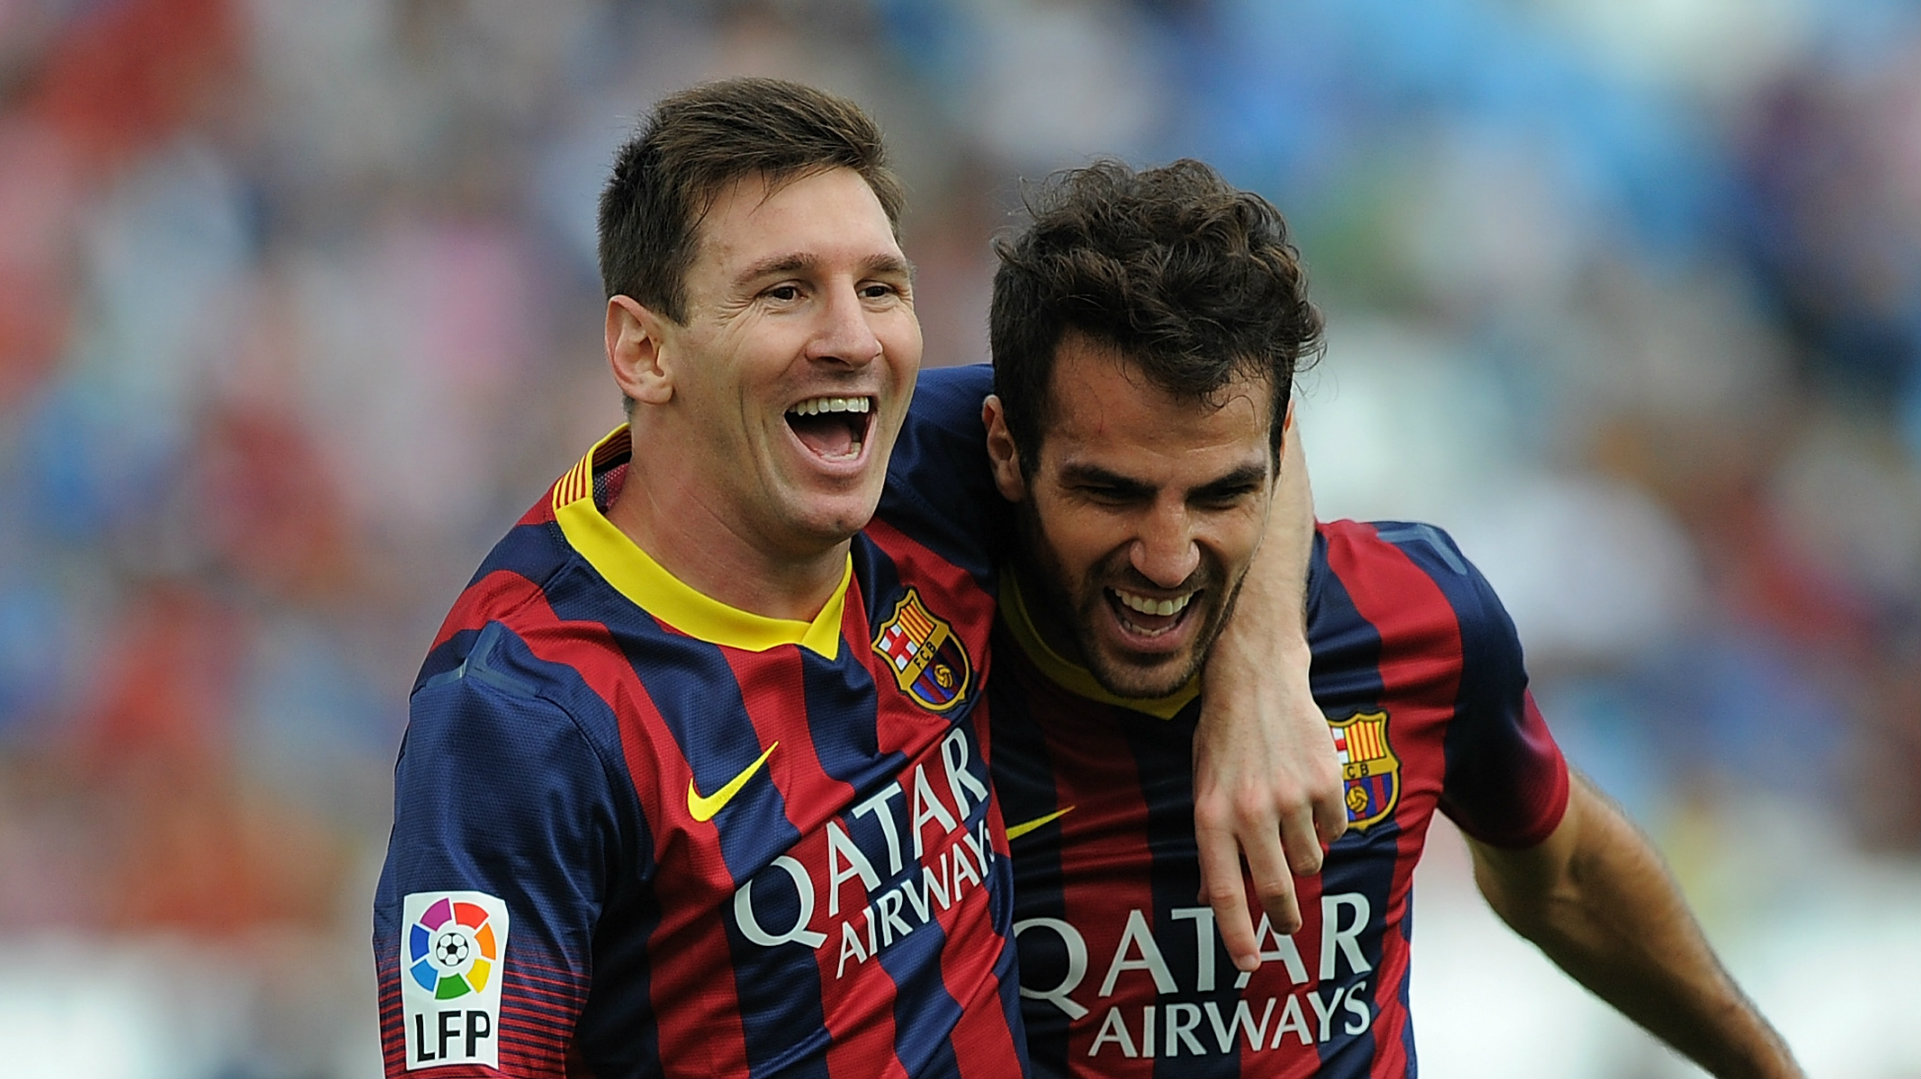 'Messi is the perfect footballer' - Fabregas 'thankful' he was able to play alongside Barca superstar